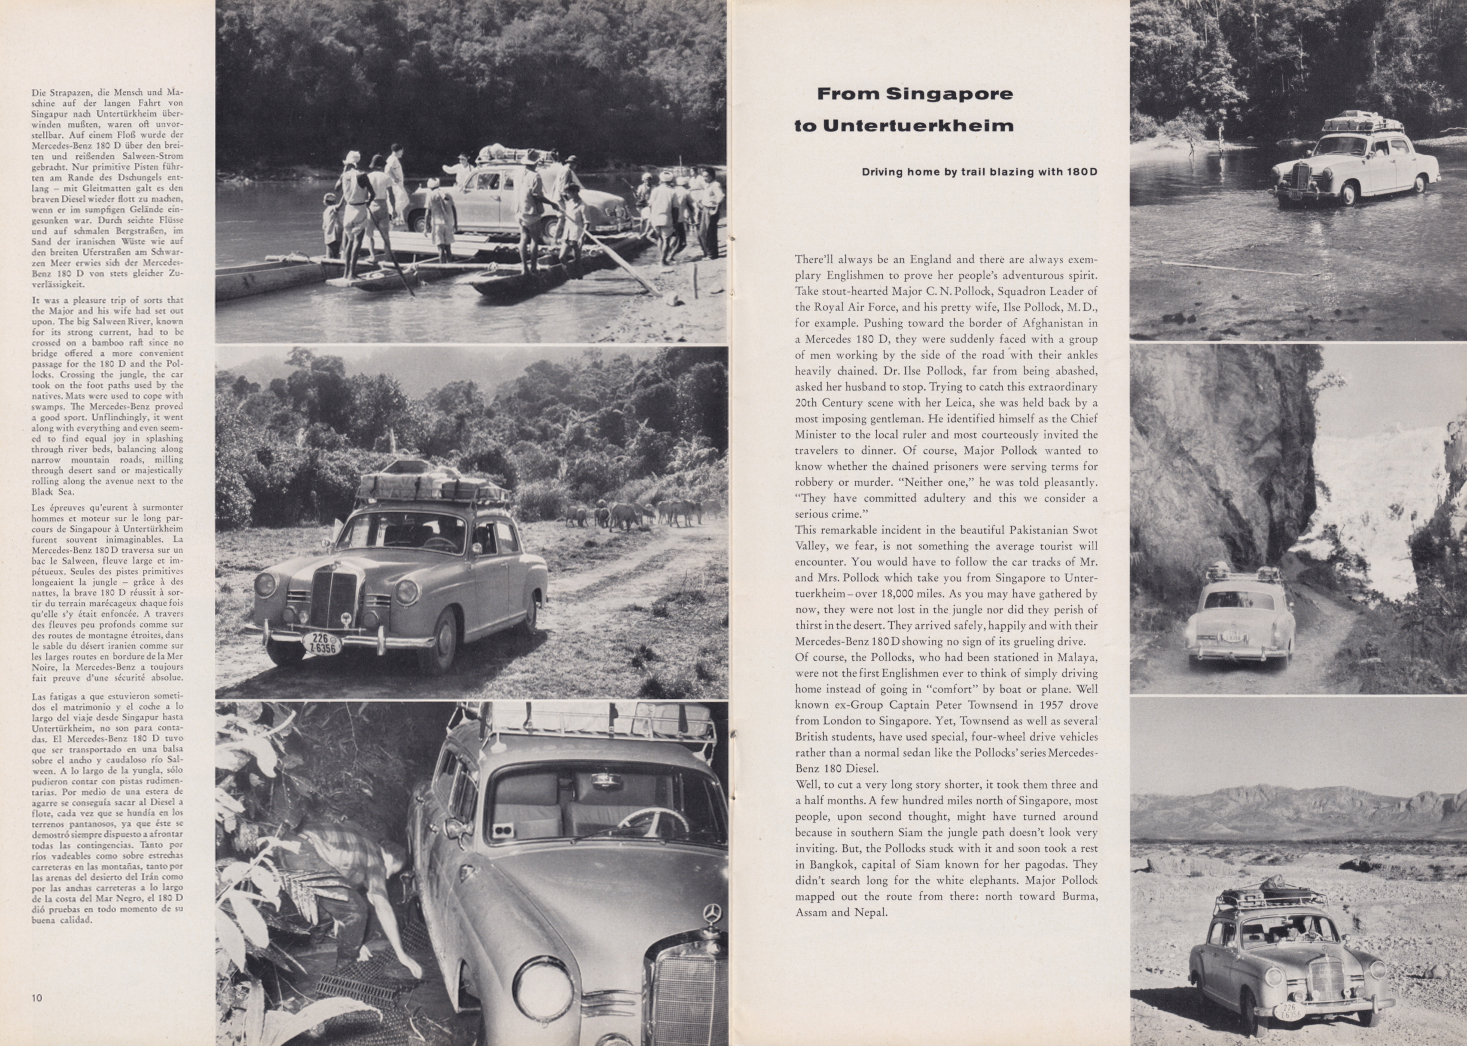 (REVISTA): Periódico In aller welt n.º 32 - Mercedes-Benz no mundo - 1959 - multilingue 006